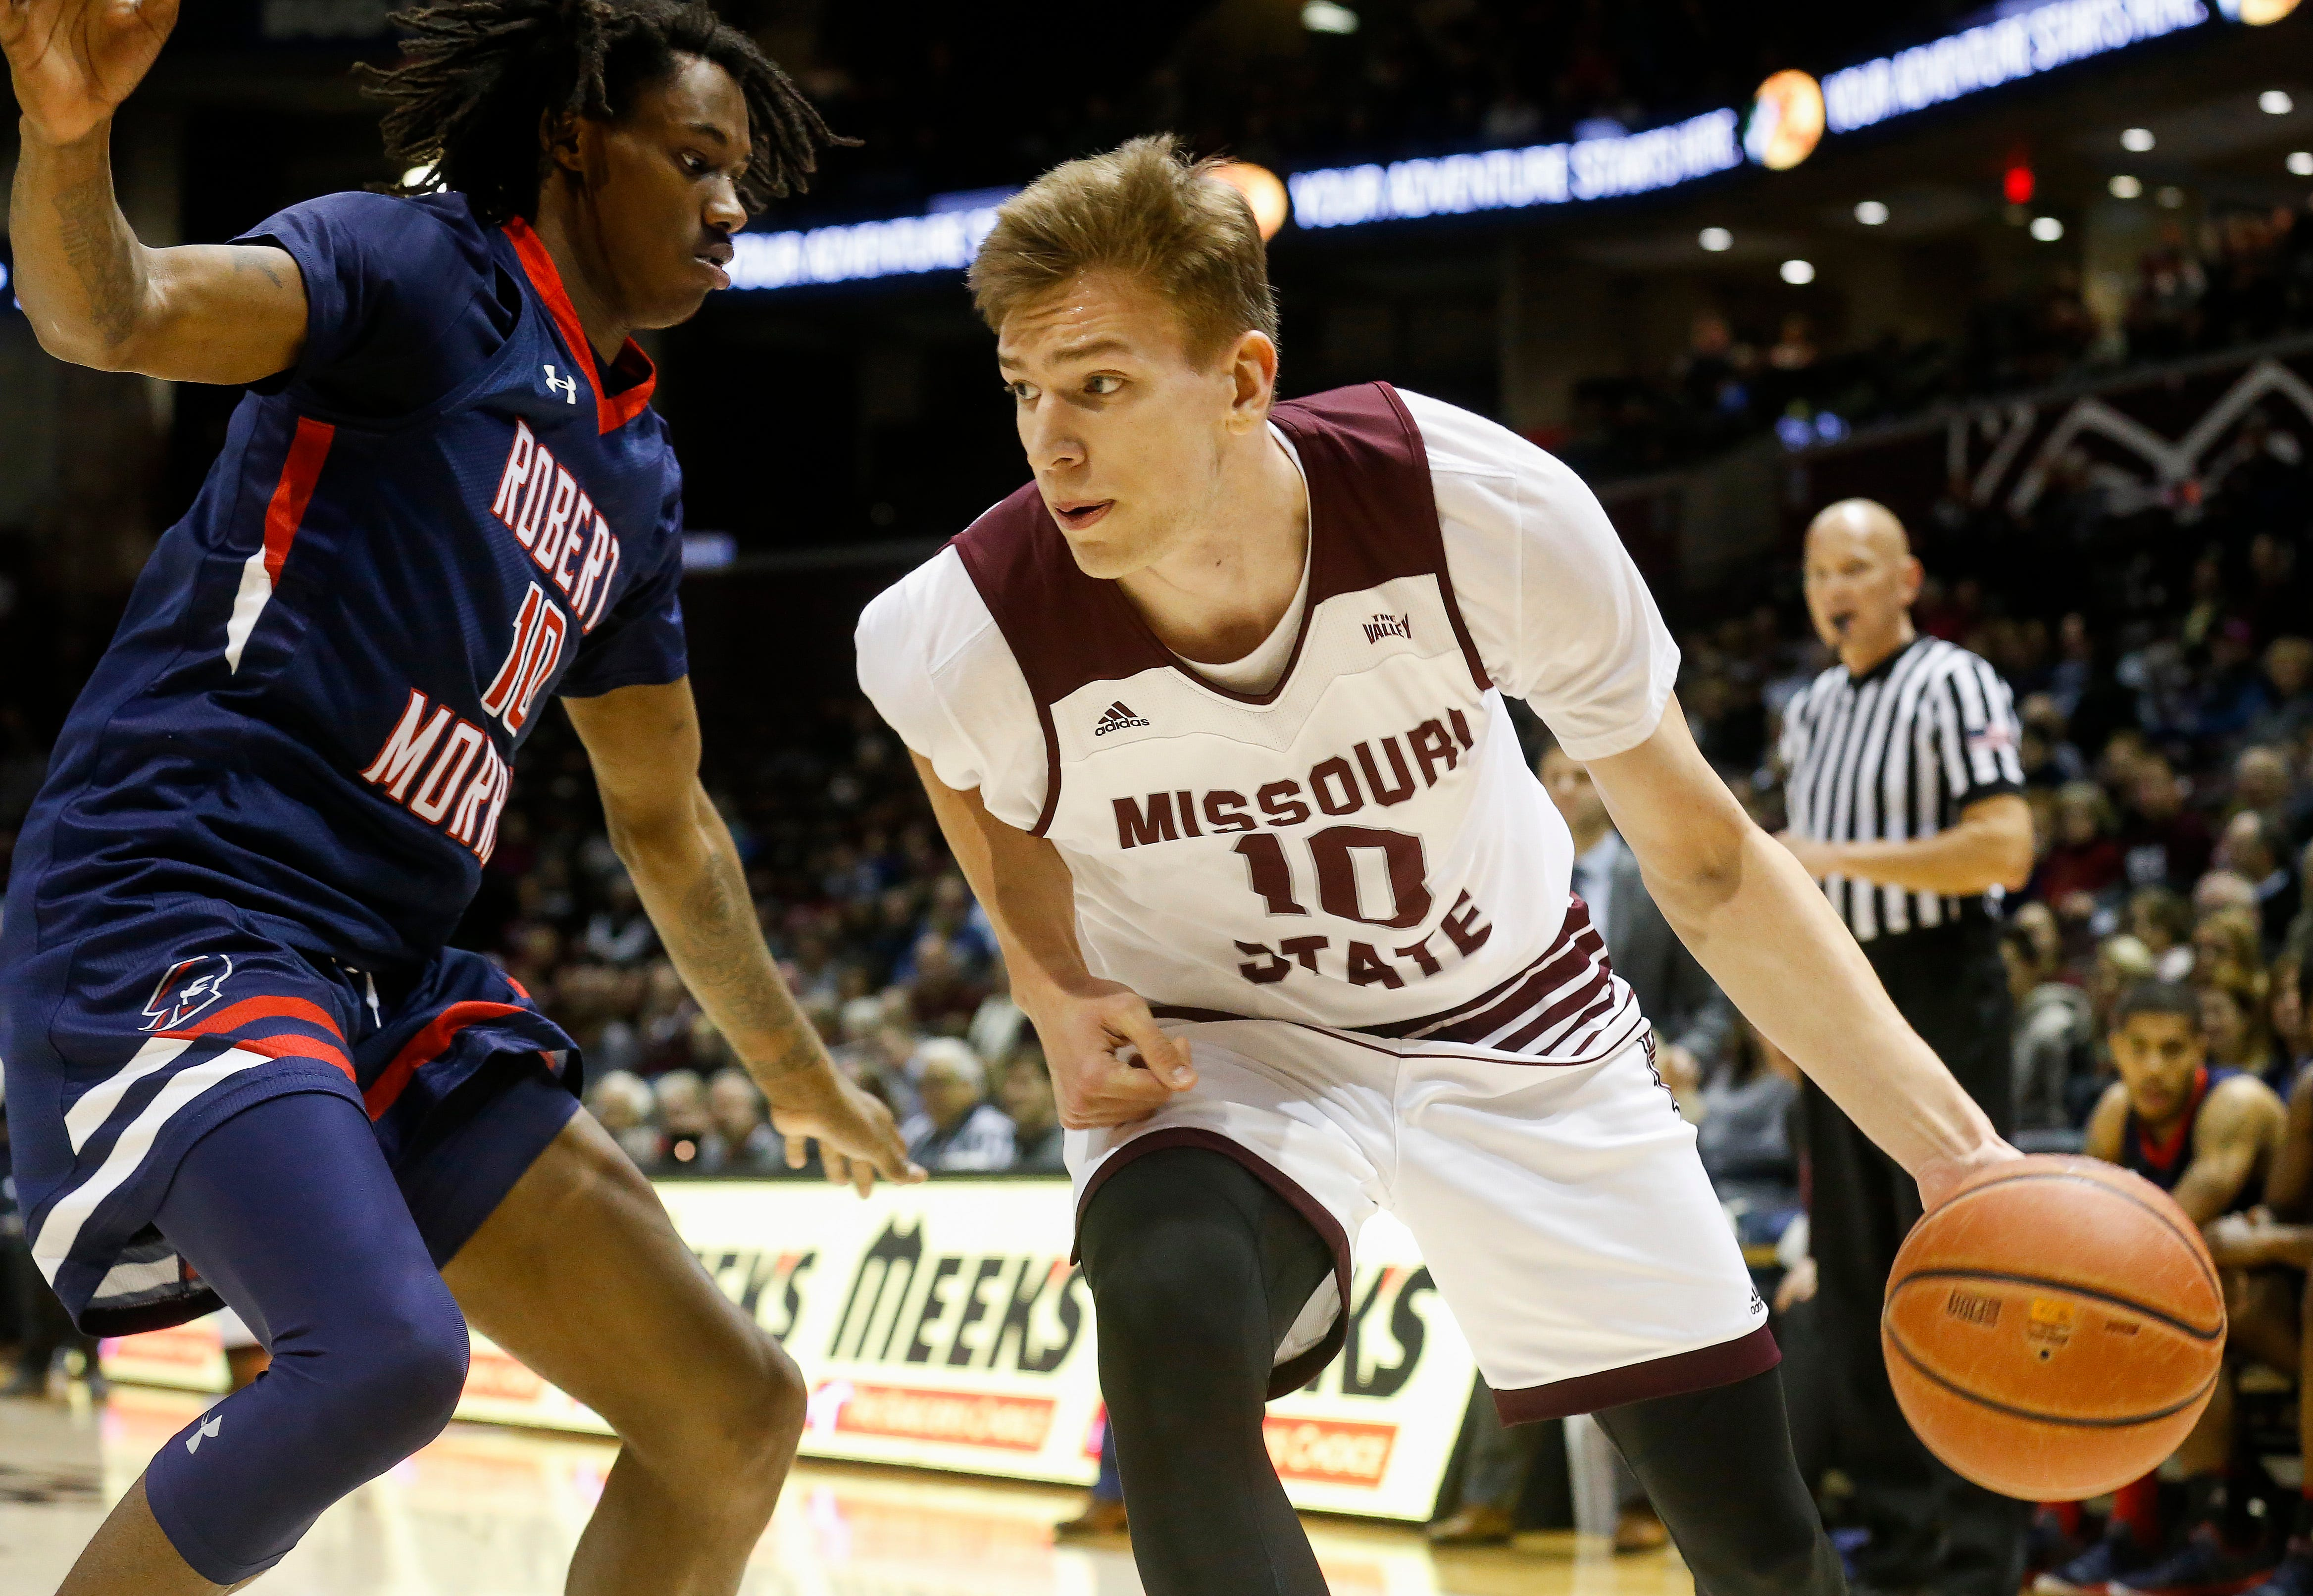 Missouri State University defeated Robert Morris 74-60 at JQH Arena on Friday, Nov. 9, 2018.